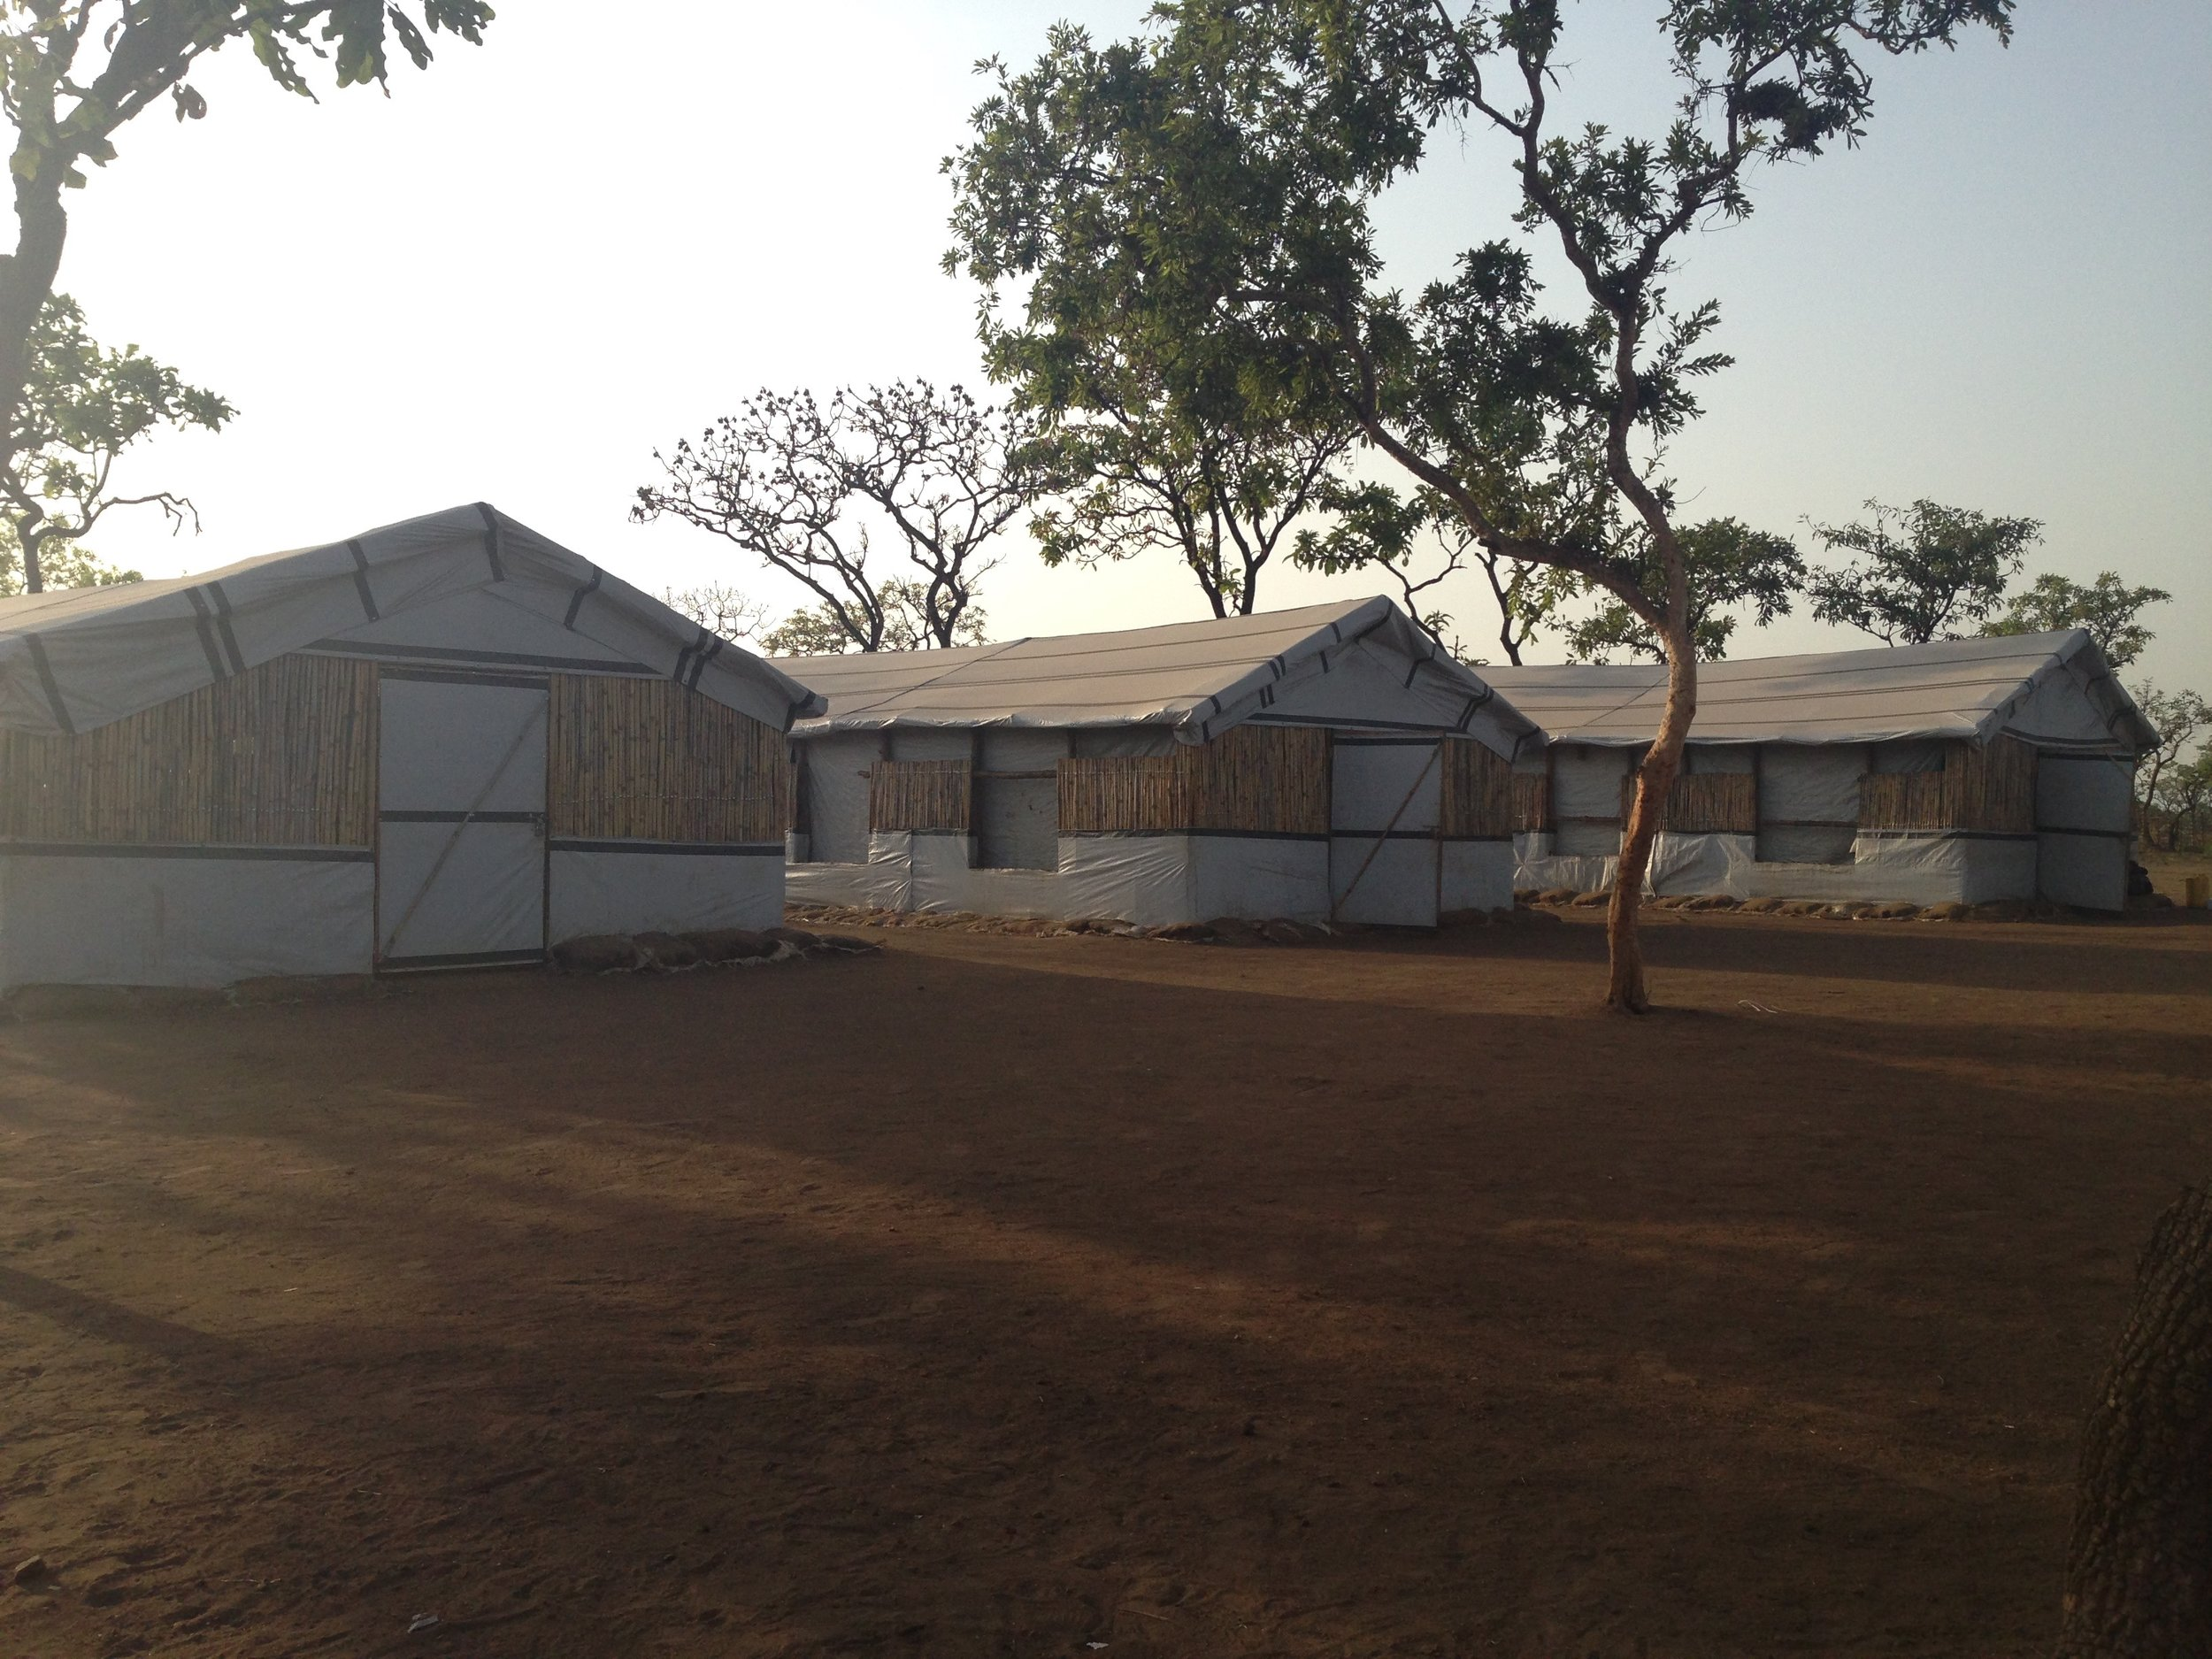 Three Child Friendly Spaces used as ECD centres in the morning and as spaces for adolescent and youth in the afternoon.